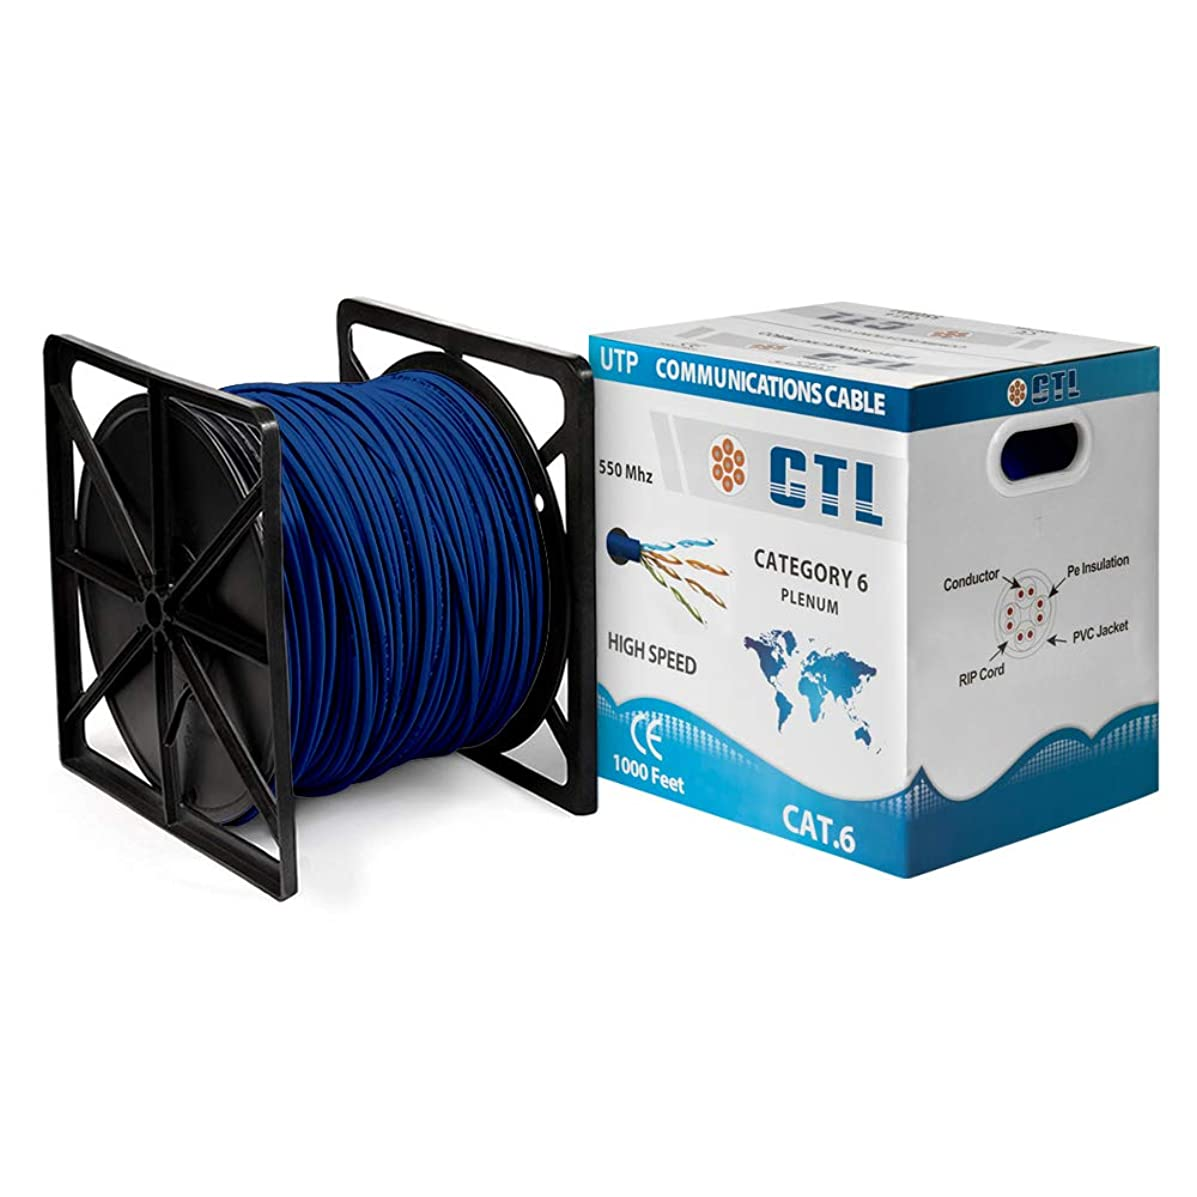 Cat6 Plenum BLUE Professional Cable 550mhz 1000ft UTP Solid Cmp-rated Bulk Cable